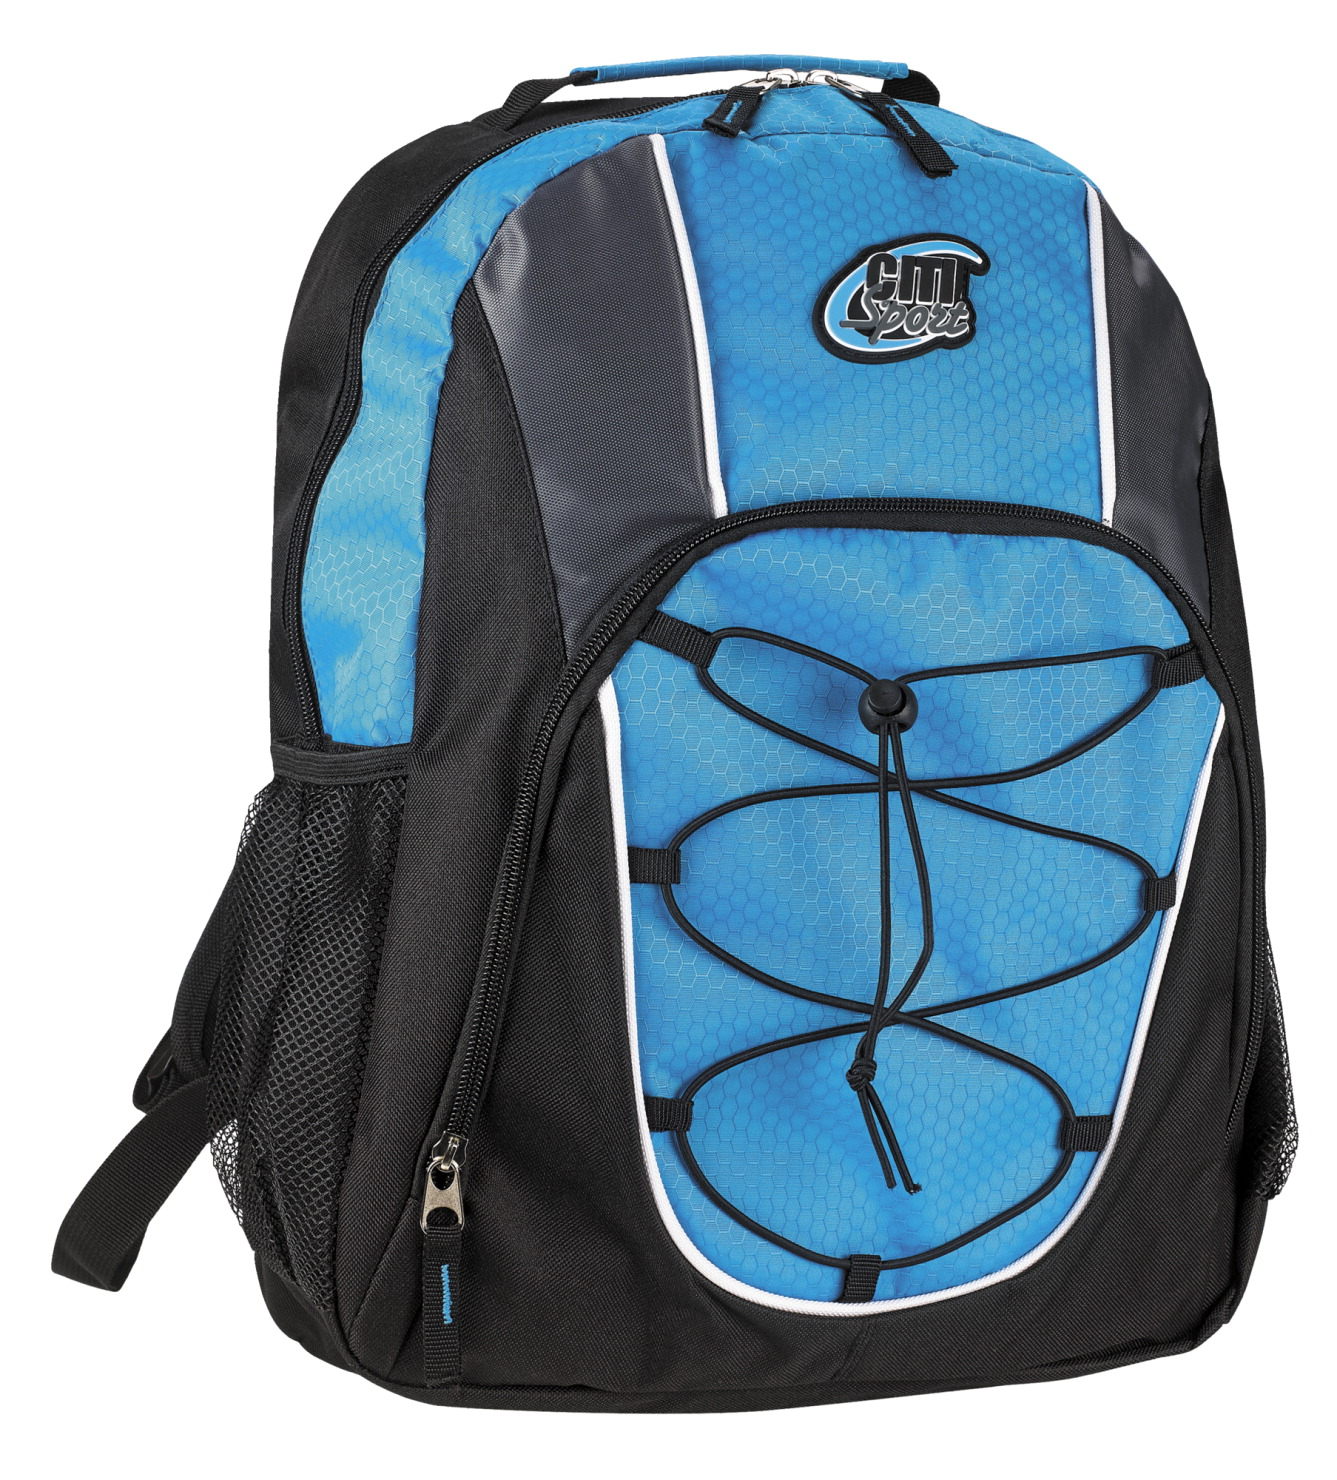 Large Backpack with Bungee Cord, Blue and Black, 17 x 13 x 6 inches